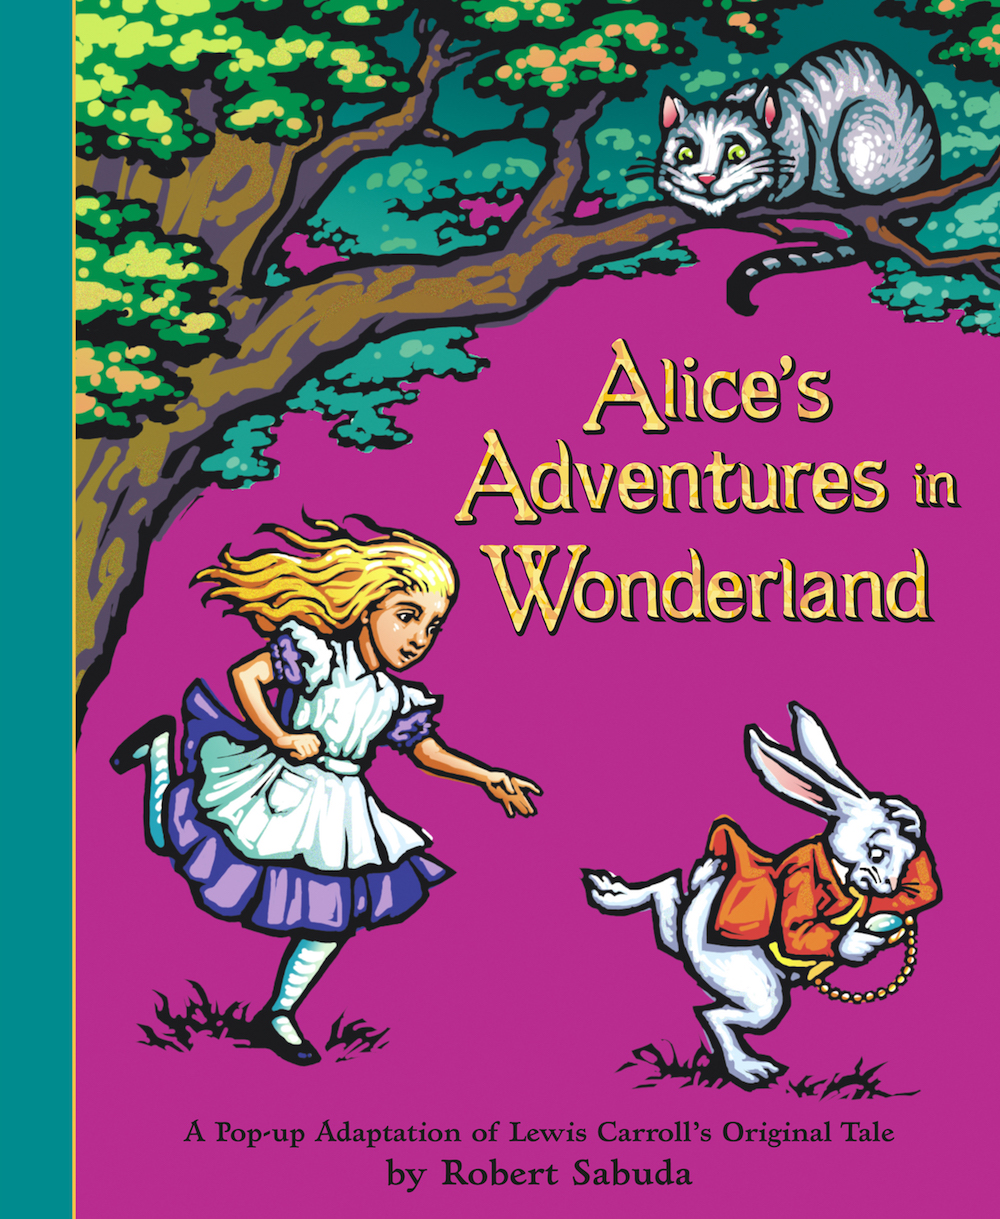 Cover to Robert Sabuda's 2003 pop-up adaptation of 'Alice's Adventures in Wonderland', with Alice chasing White Rabbit